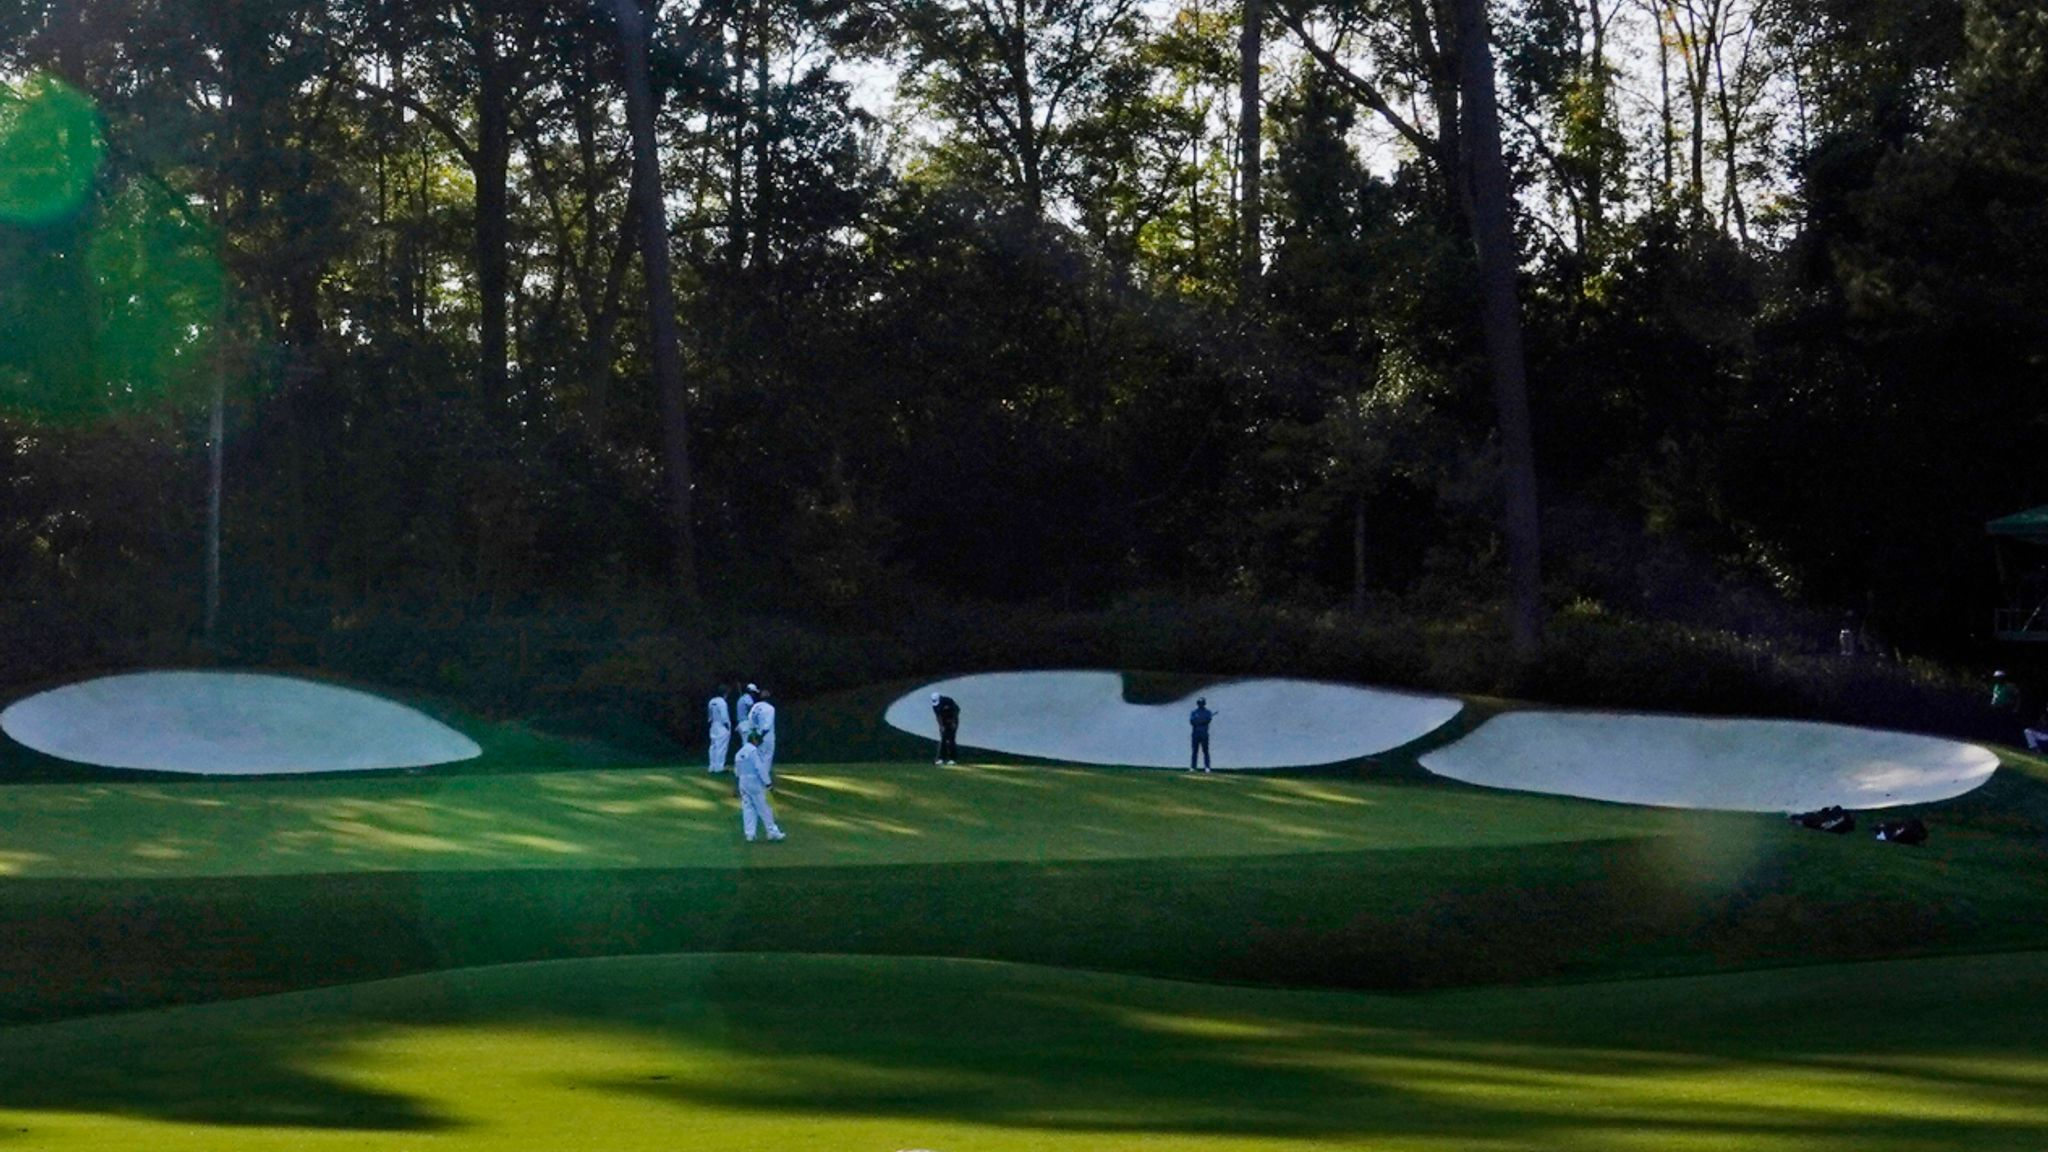 The Masters Counting Down To The Start Of The 2021 Men S Major Golf Season At Augusta Golf News Sky Sports